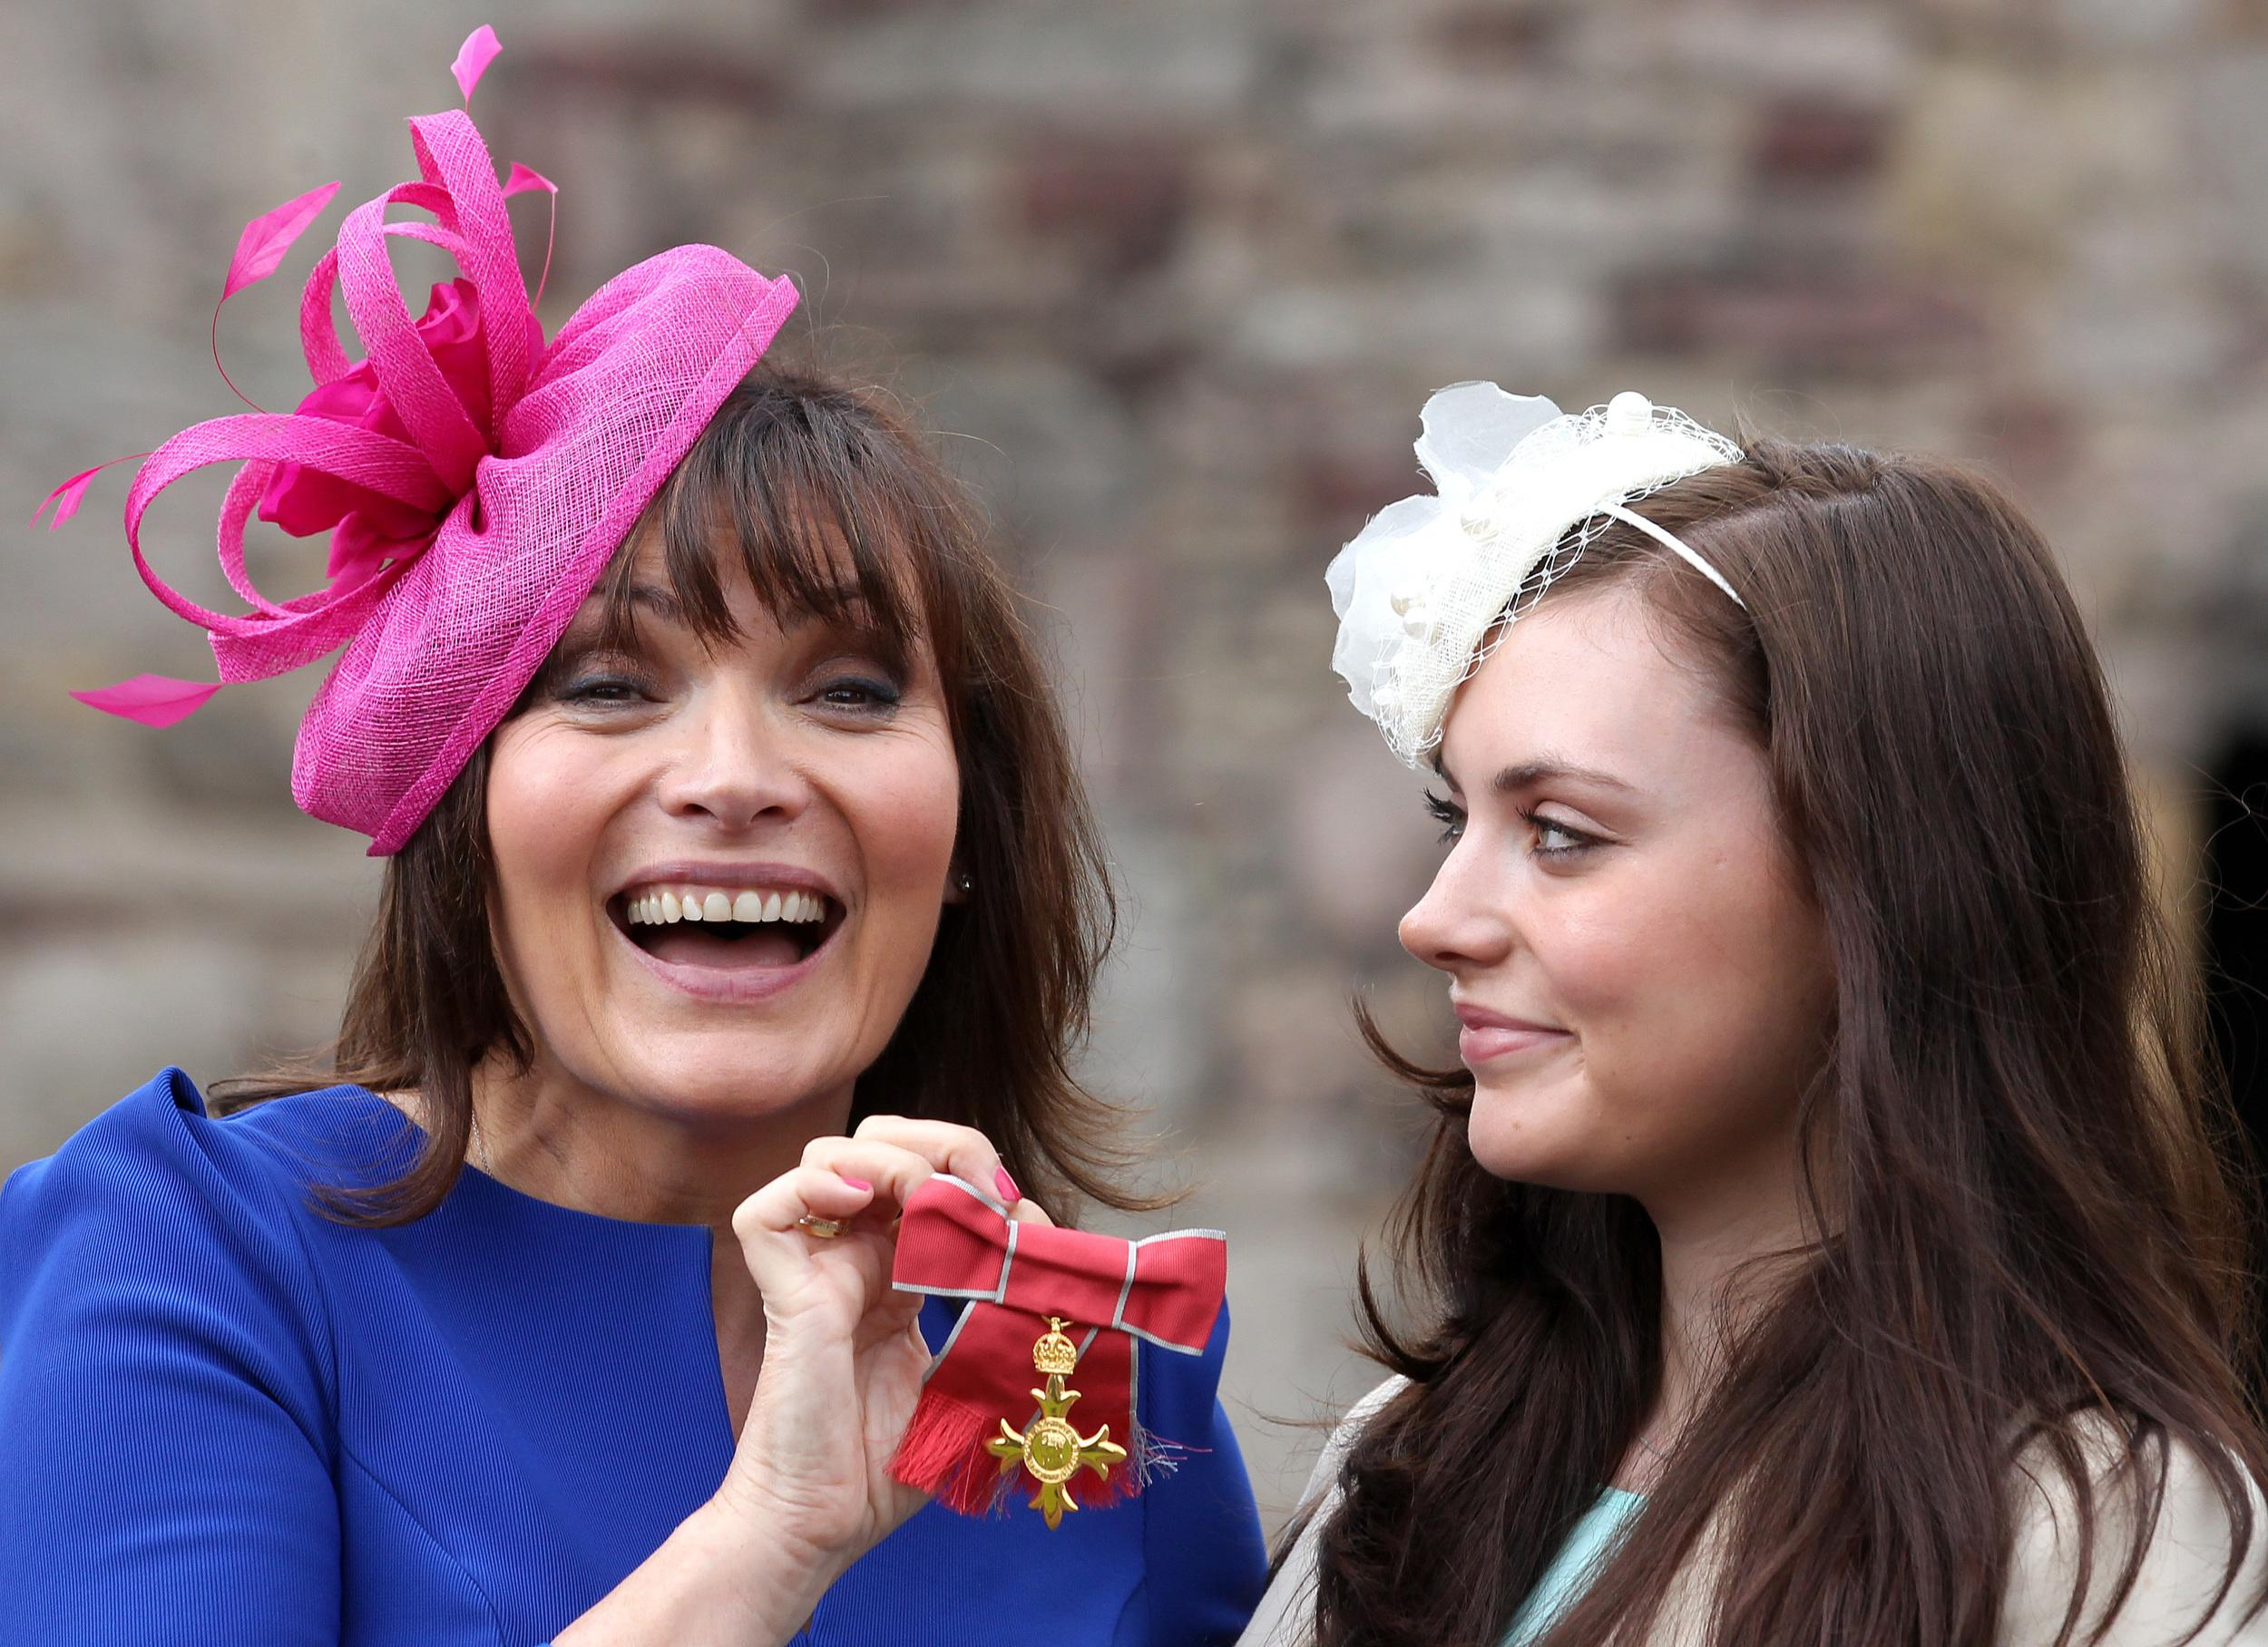 TV presenter Lorraine Kelly with her daughter Rosie after she was awarded an OBE by Queen Elizabeth II for services to charity and armed forces at a ceremony at The Palace of Holyroodhouse in Edinburgh.